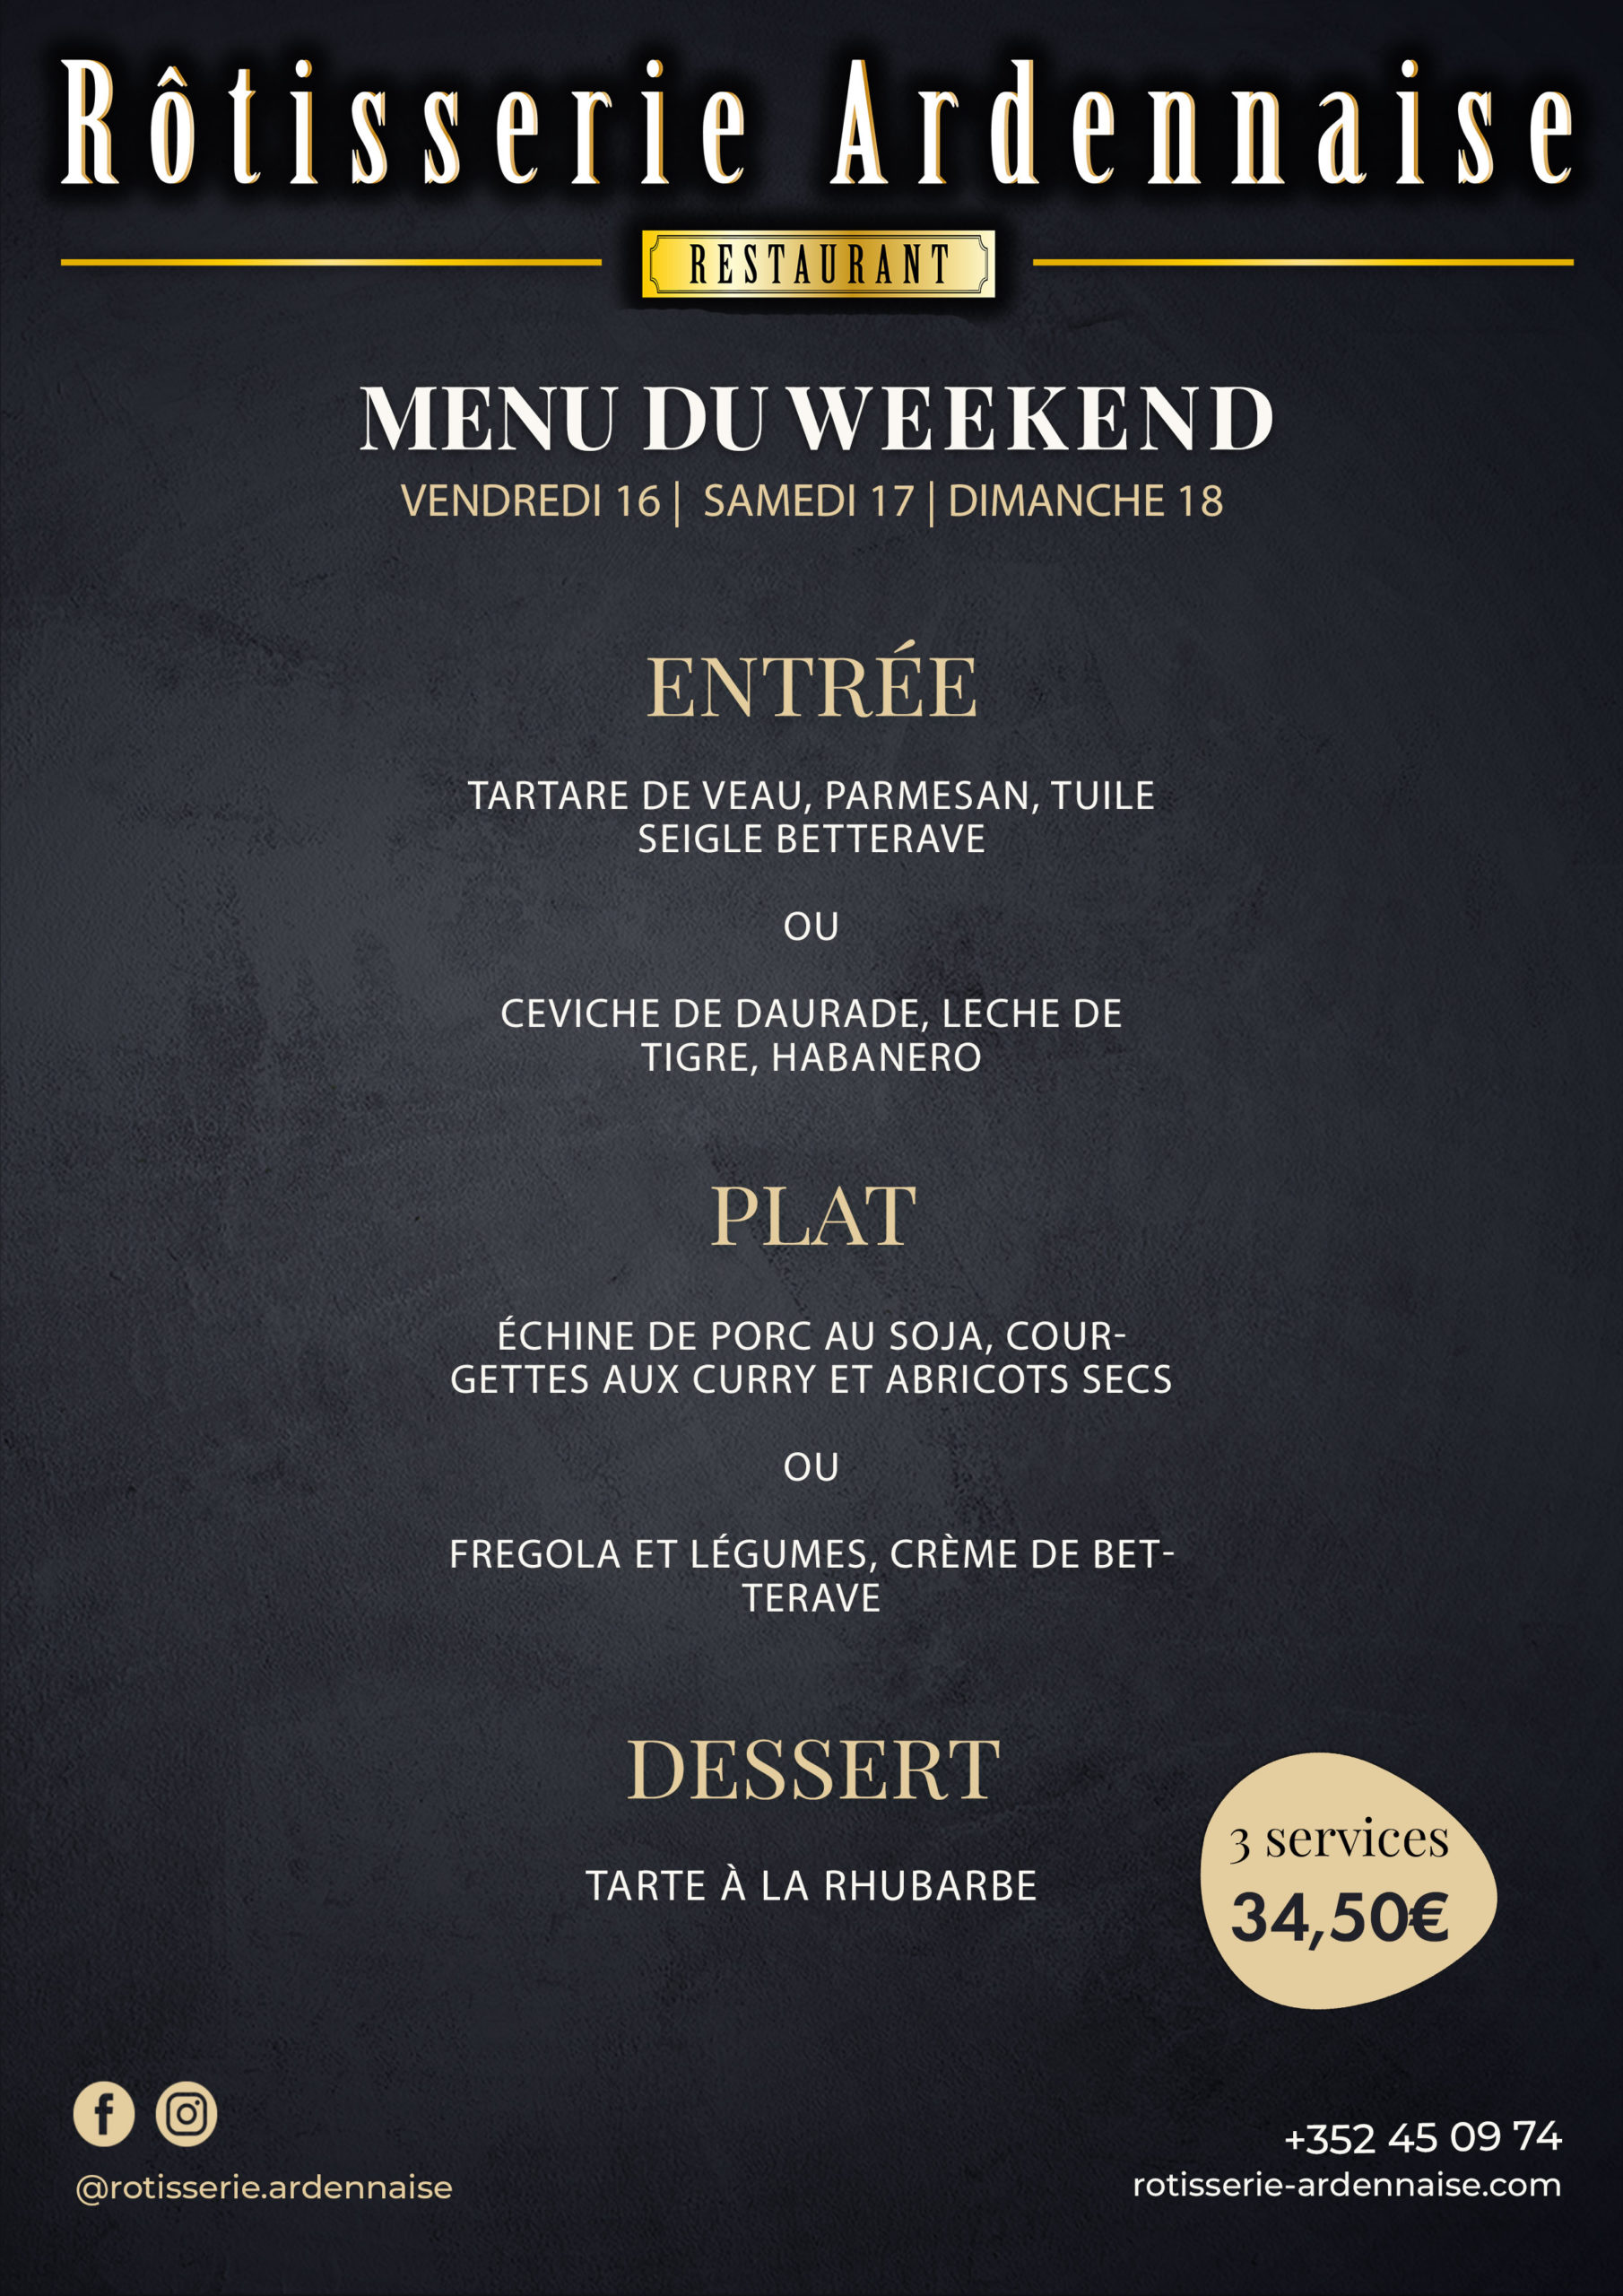 Menu du Week End Rotisserie Ardennaise Take Away Delivery Luxembourg 1 3